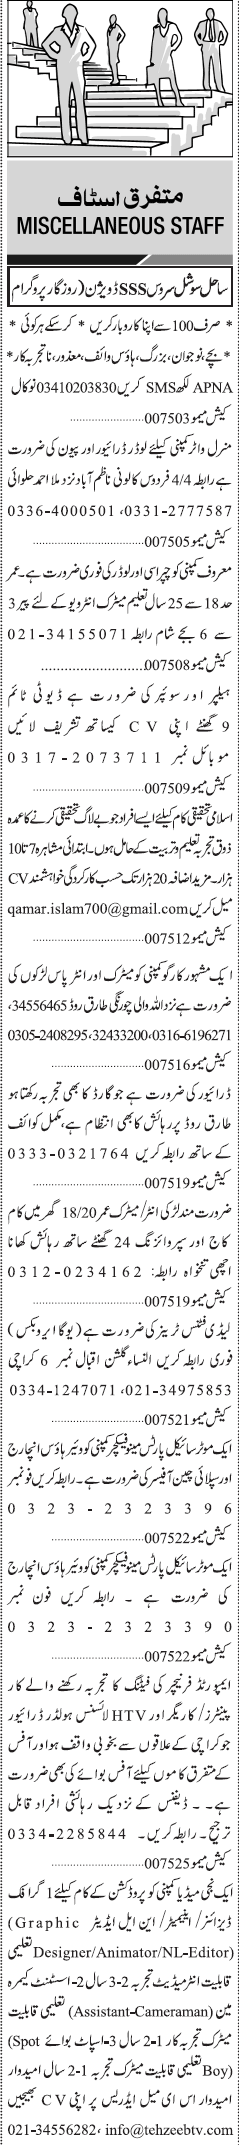 Loaders, Drivers, Sweepers, Helpers Job Opportunity